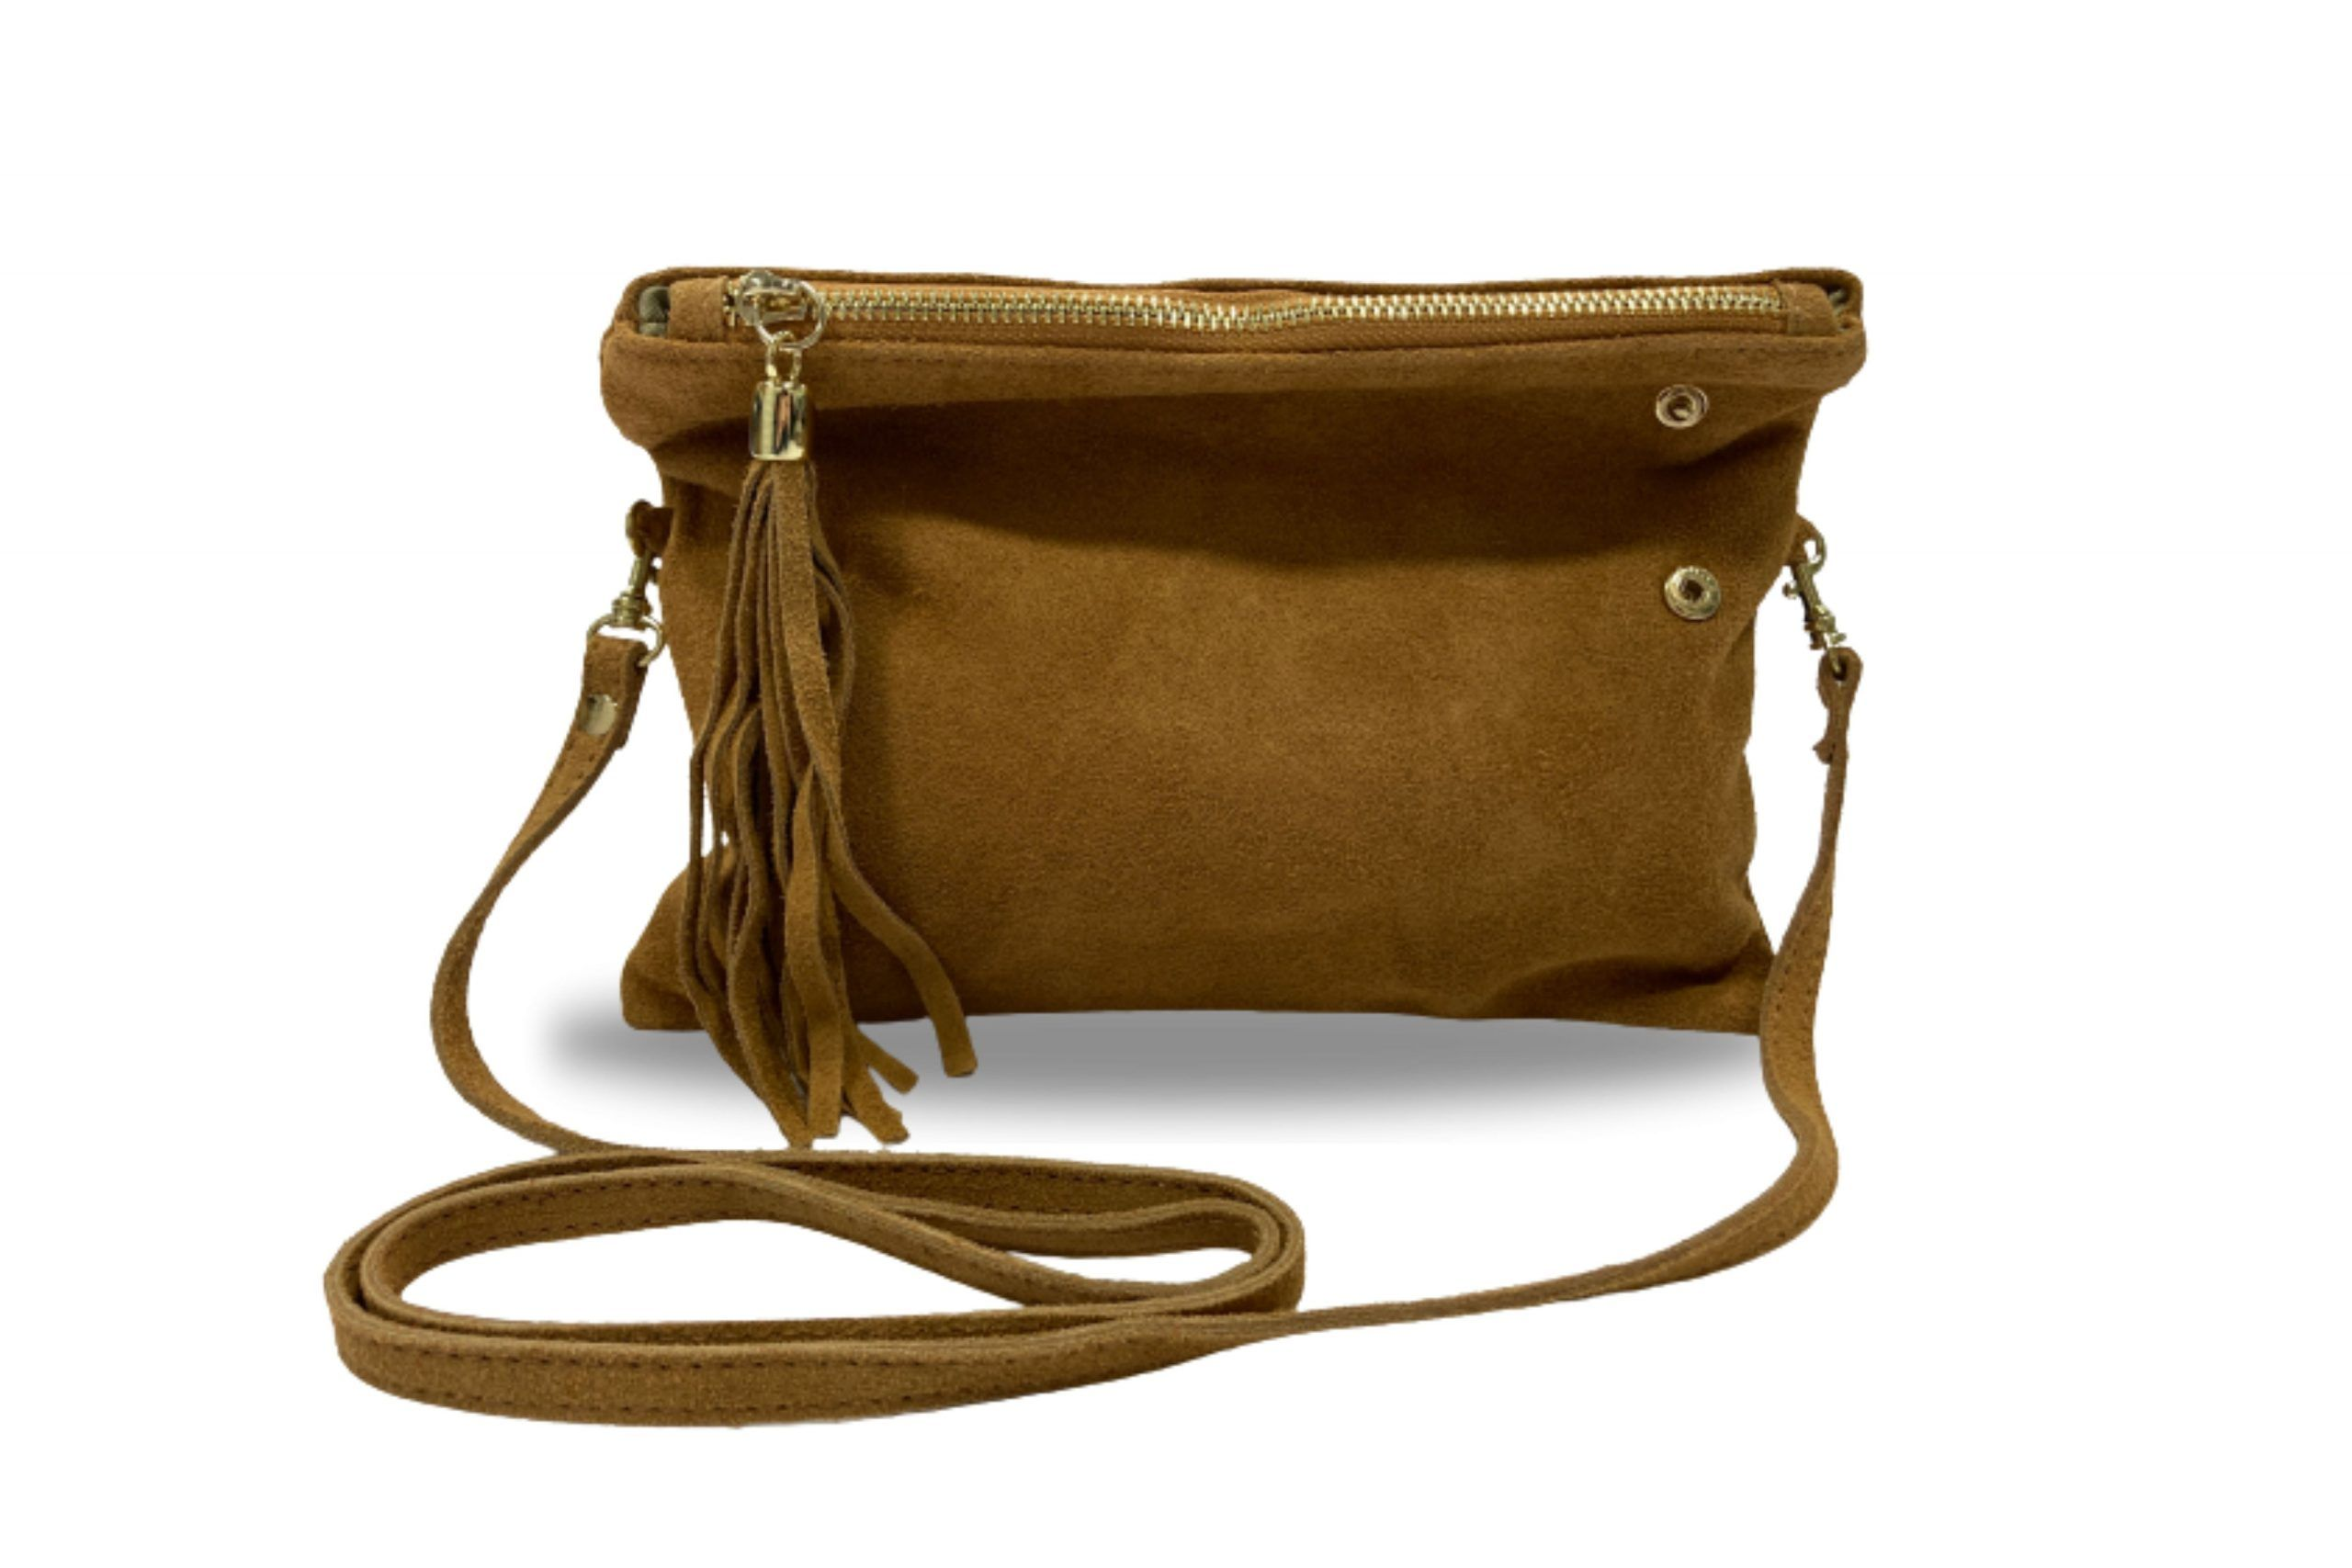 Woodland Leather Fold Over Petite Clutch Style Bag